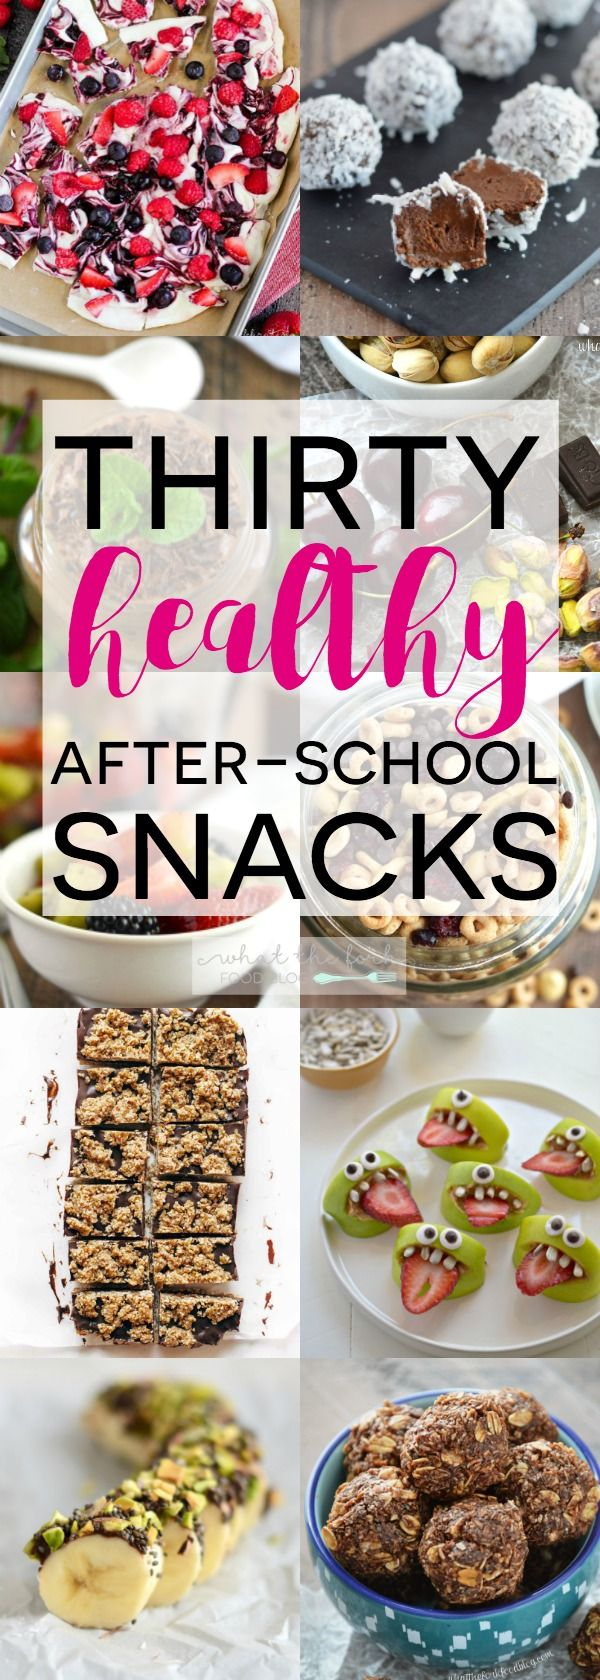 A list of 30 Healthy After-School Snacks to help you and your kids power through the afternoon. All are simple, easy to make recipes and are kid-friendly.